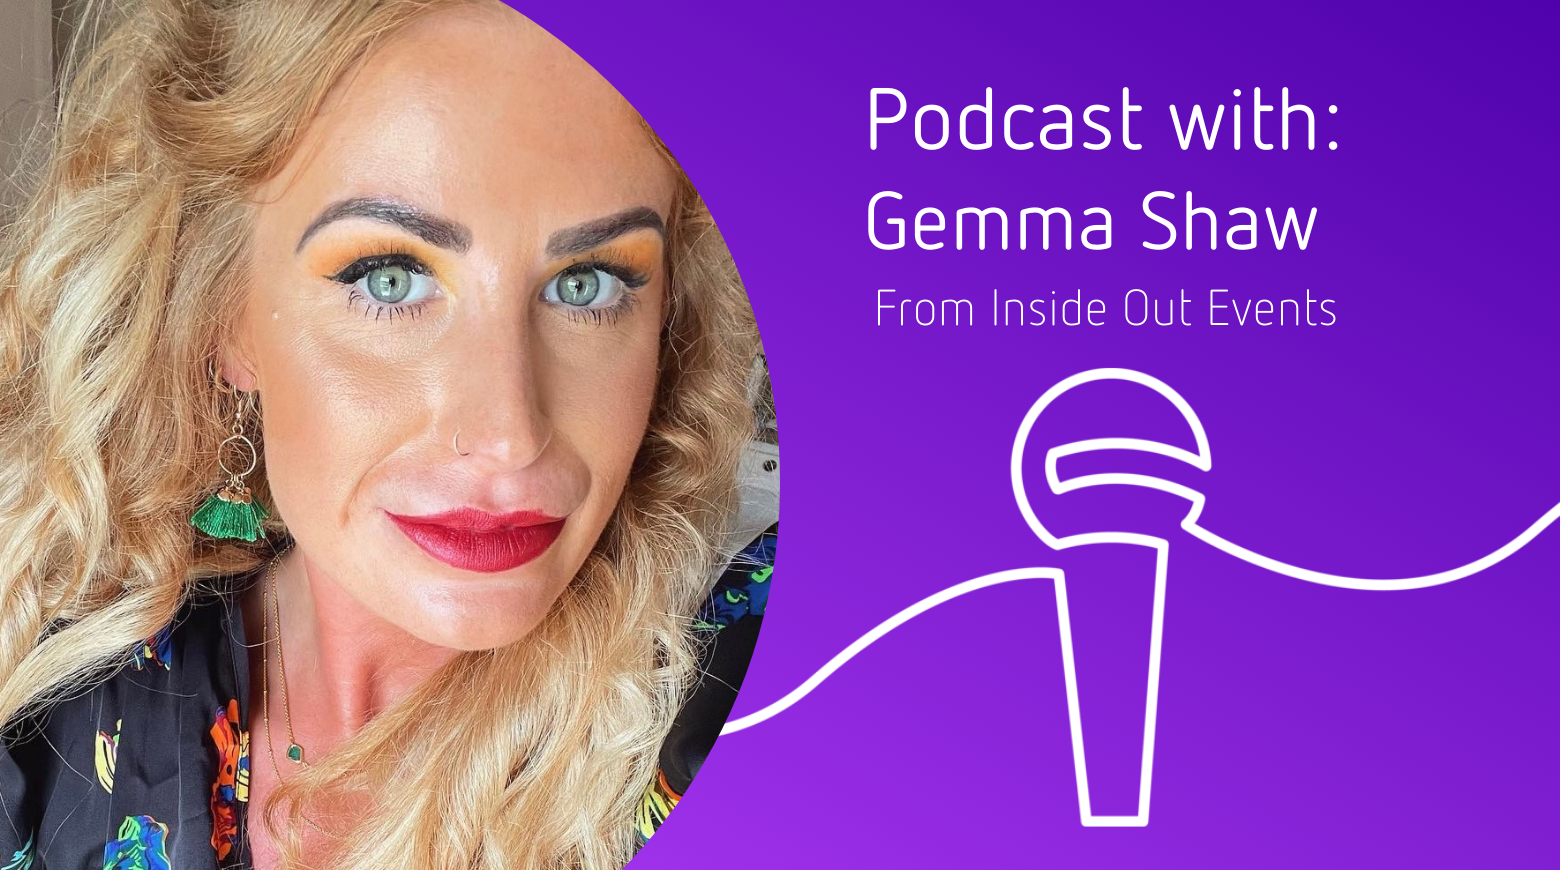 How to stand out at live events? Podcast with Gemma Shaw